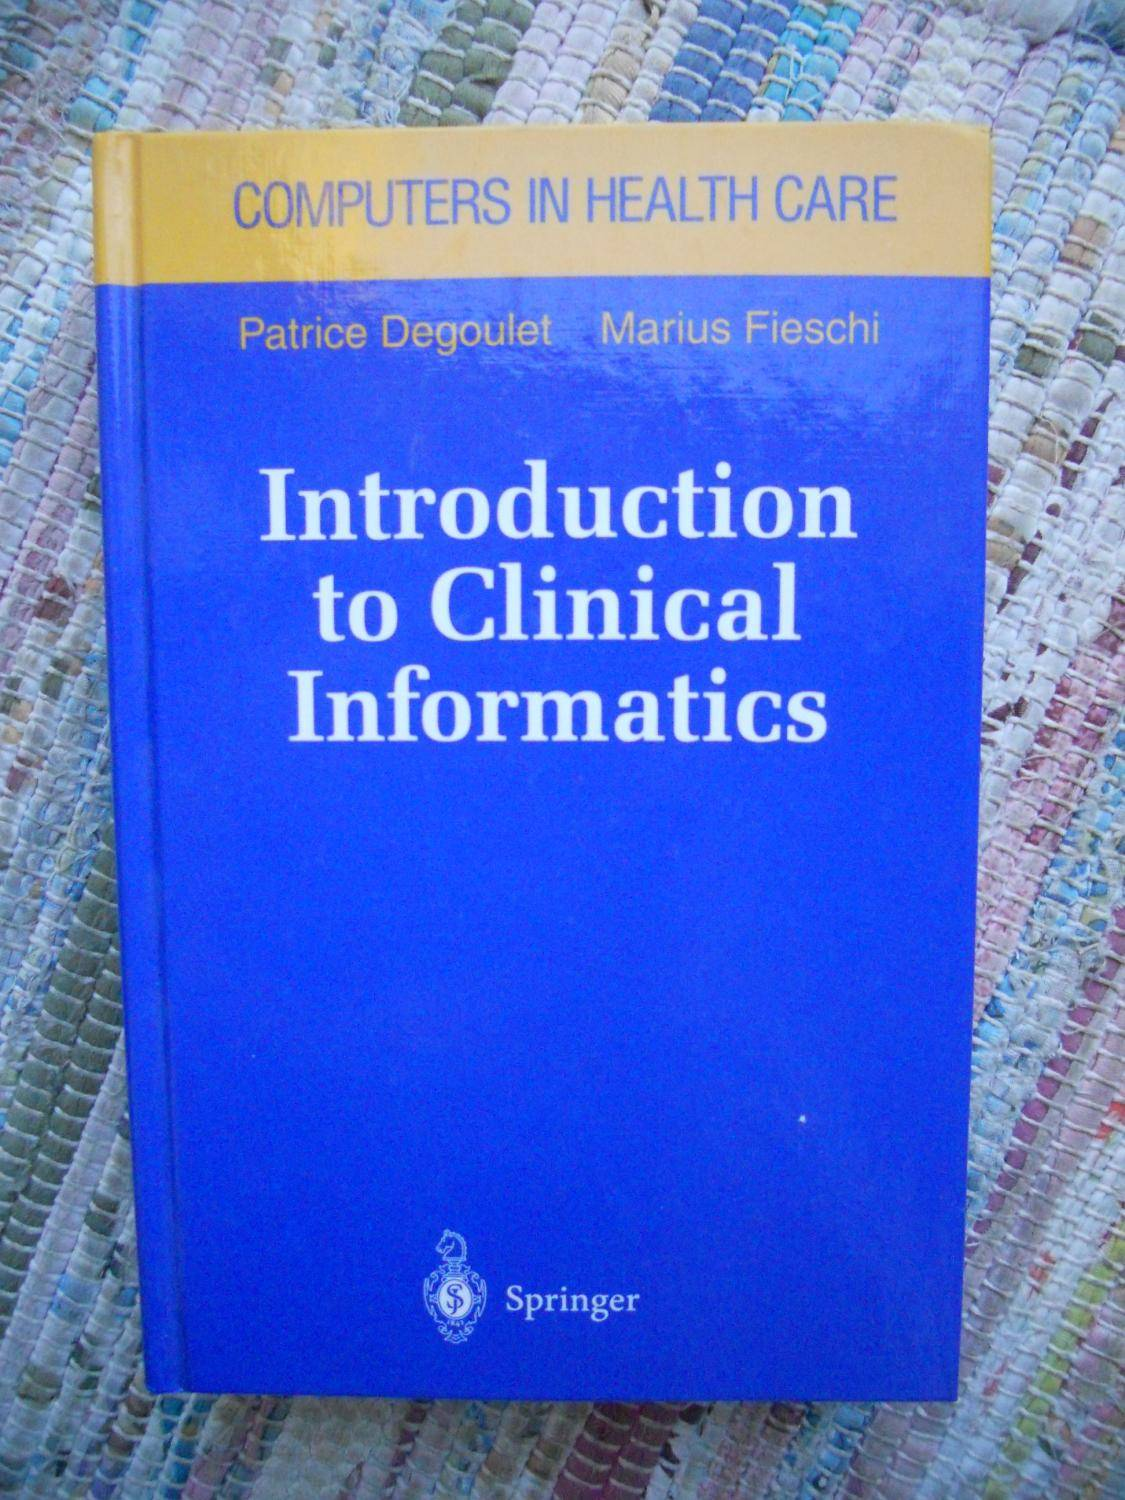 Introduction to clinical informatics - Computers in health care Patrice Degoulet - Marius Fieschi [ ]